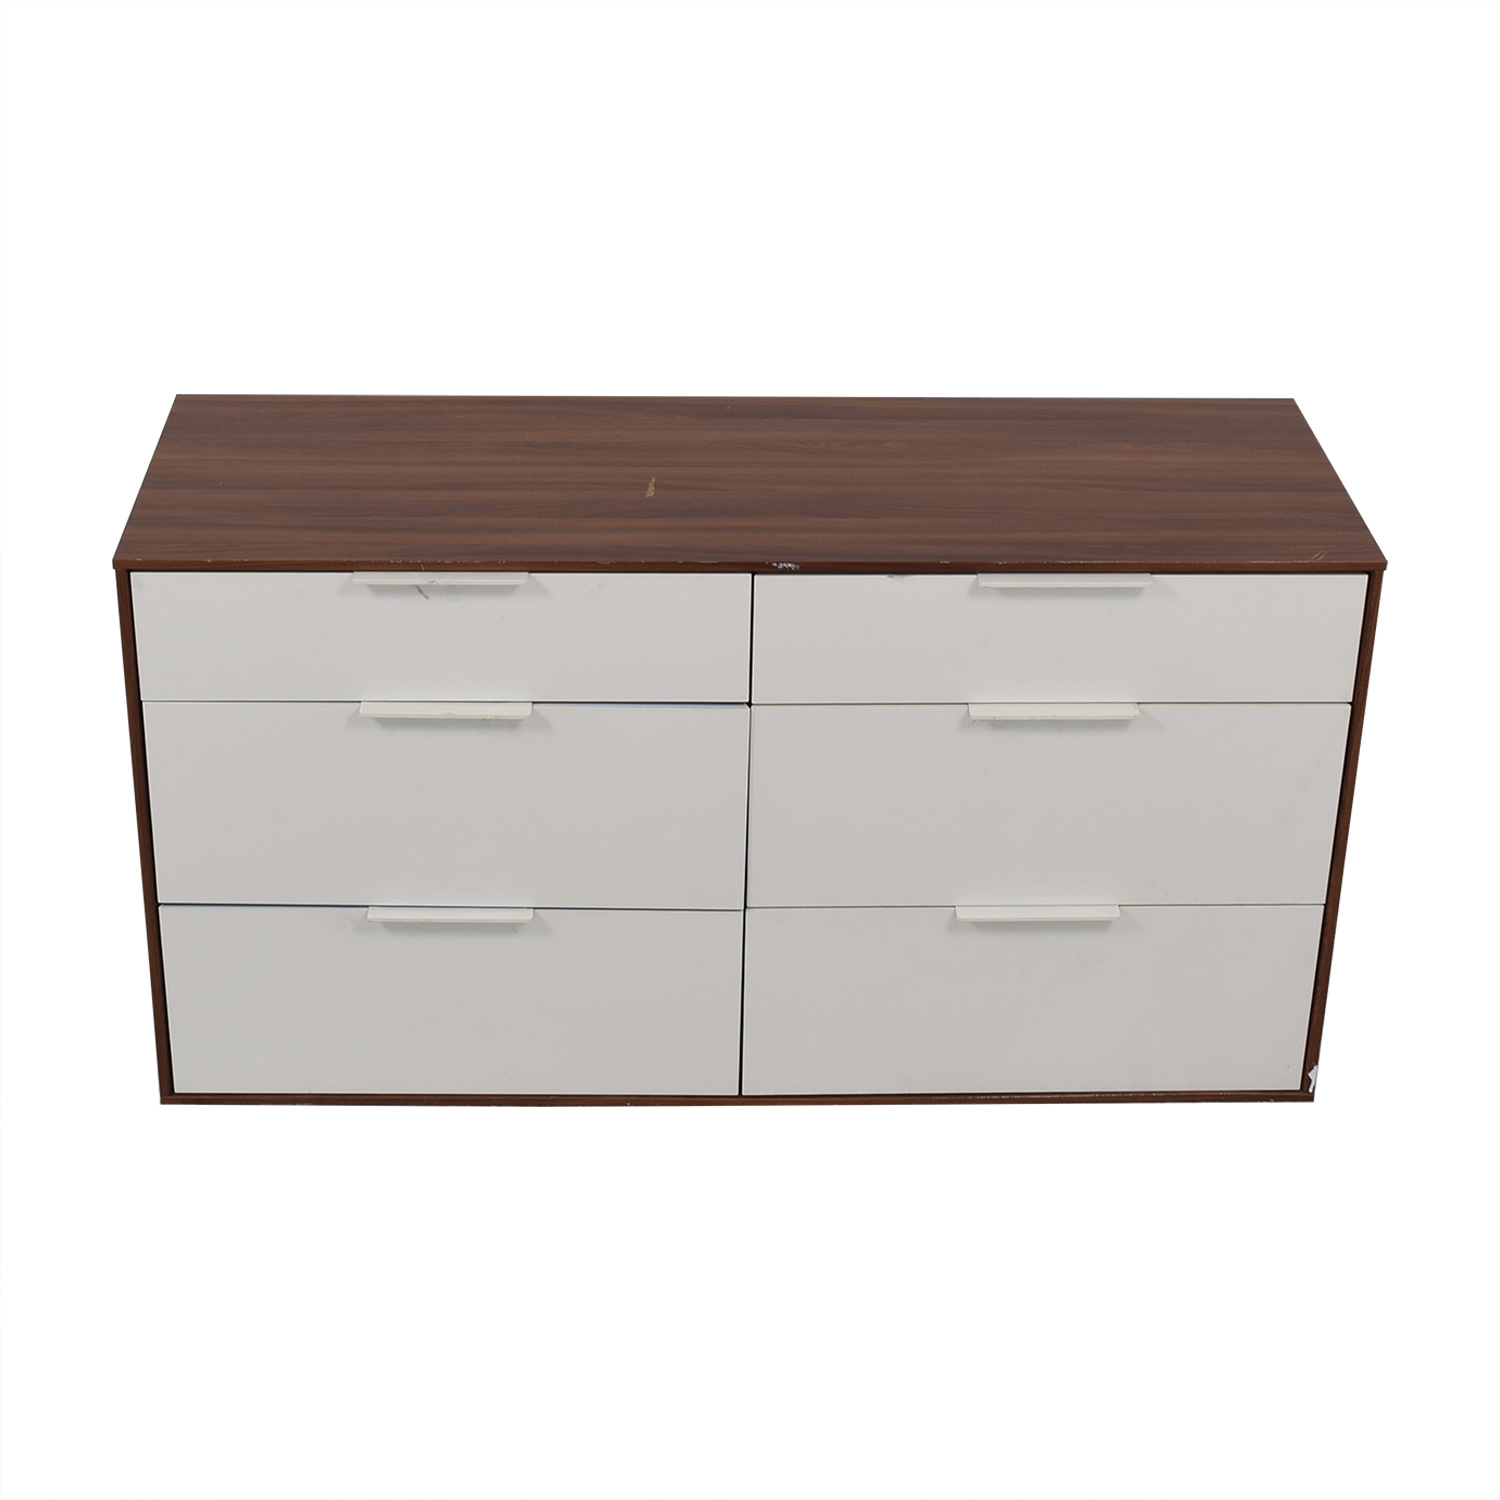 Aurelle Home Aurelle Home White Gloss Six-Drawer Dresser dimensions